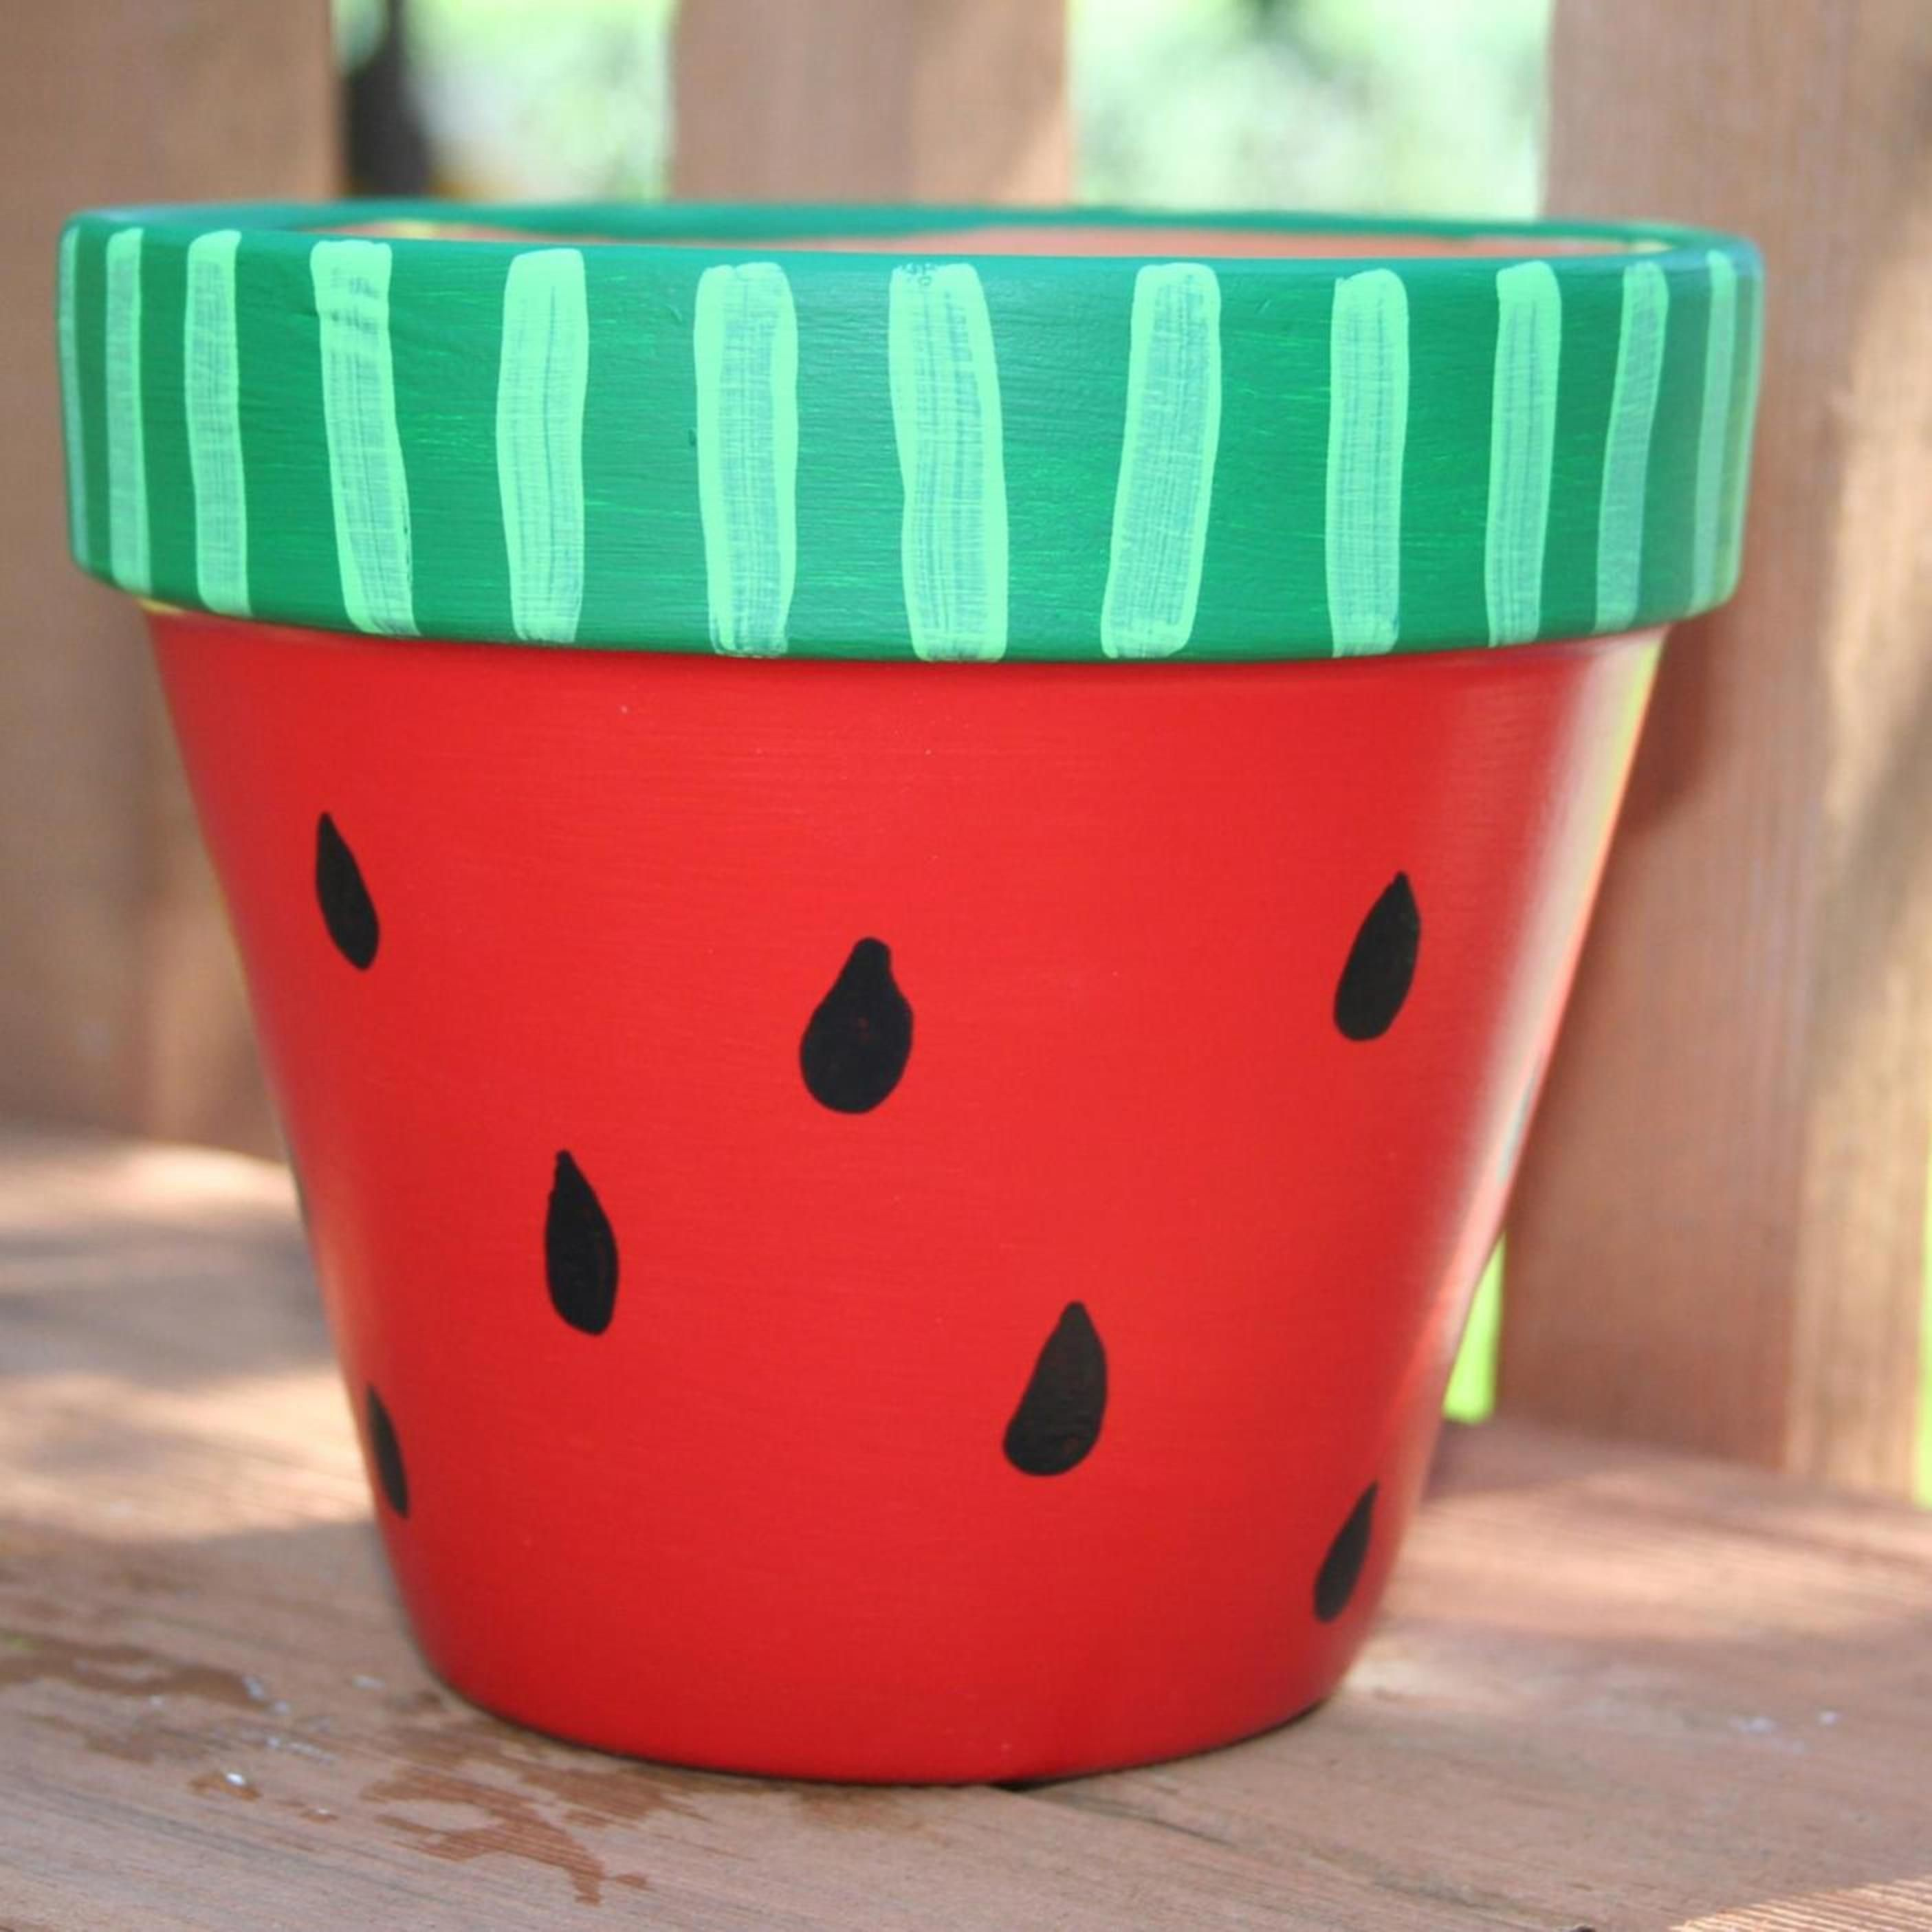 25 Simple Easy Flower Pot Painting Ideas Craft Home Ideas Decorated Flower Pots Painted Flower Pots Painted Plant Pots